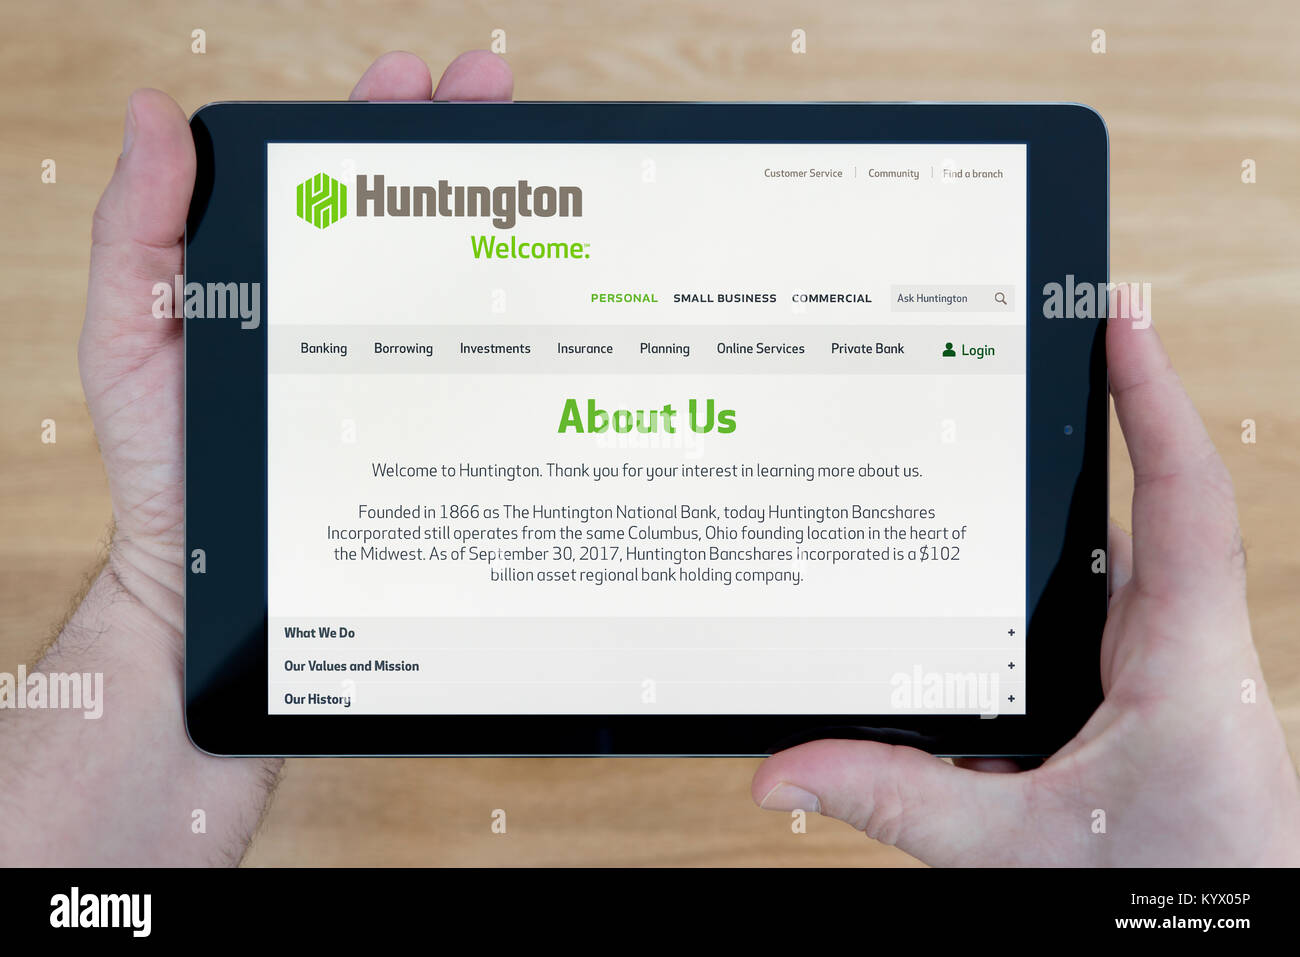 A man looks at the huntington.com website on his iPad tablet device, with a wooden table top background (Editorial - Stock Image